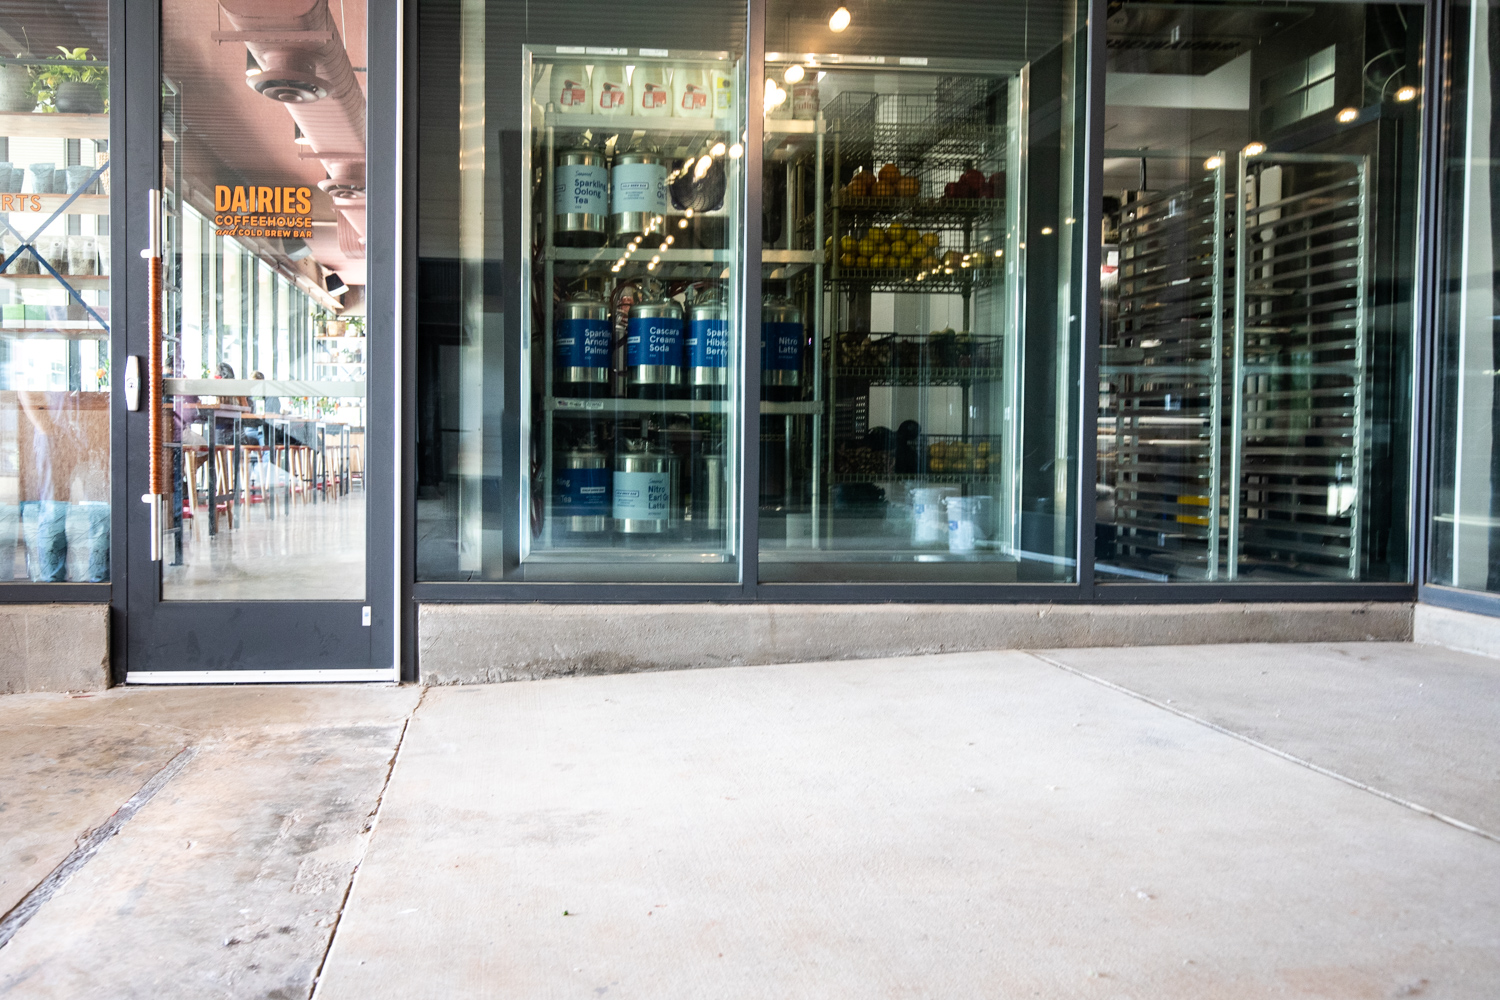 Exterior of Cold Brew Bar with the kitchen and the taps visible.